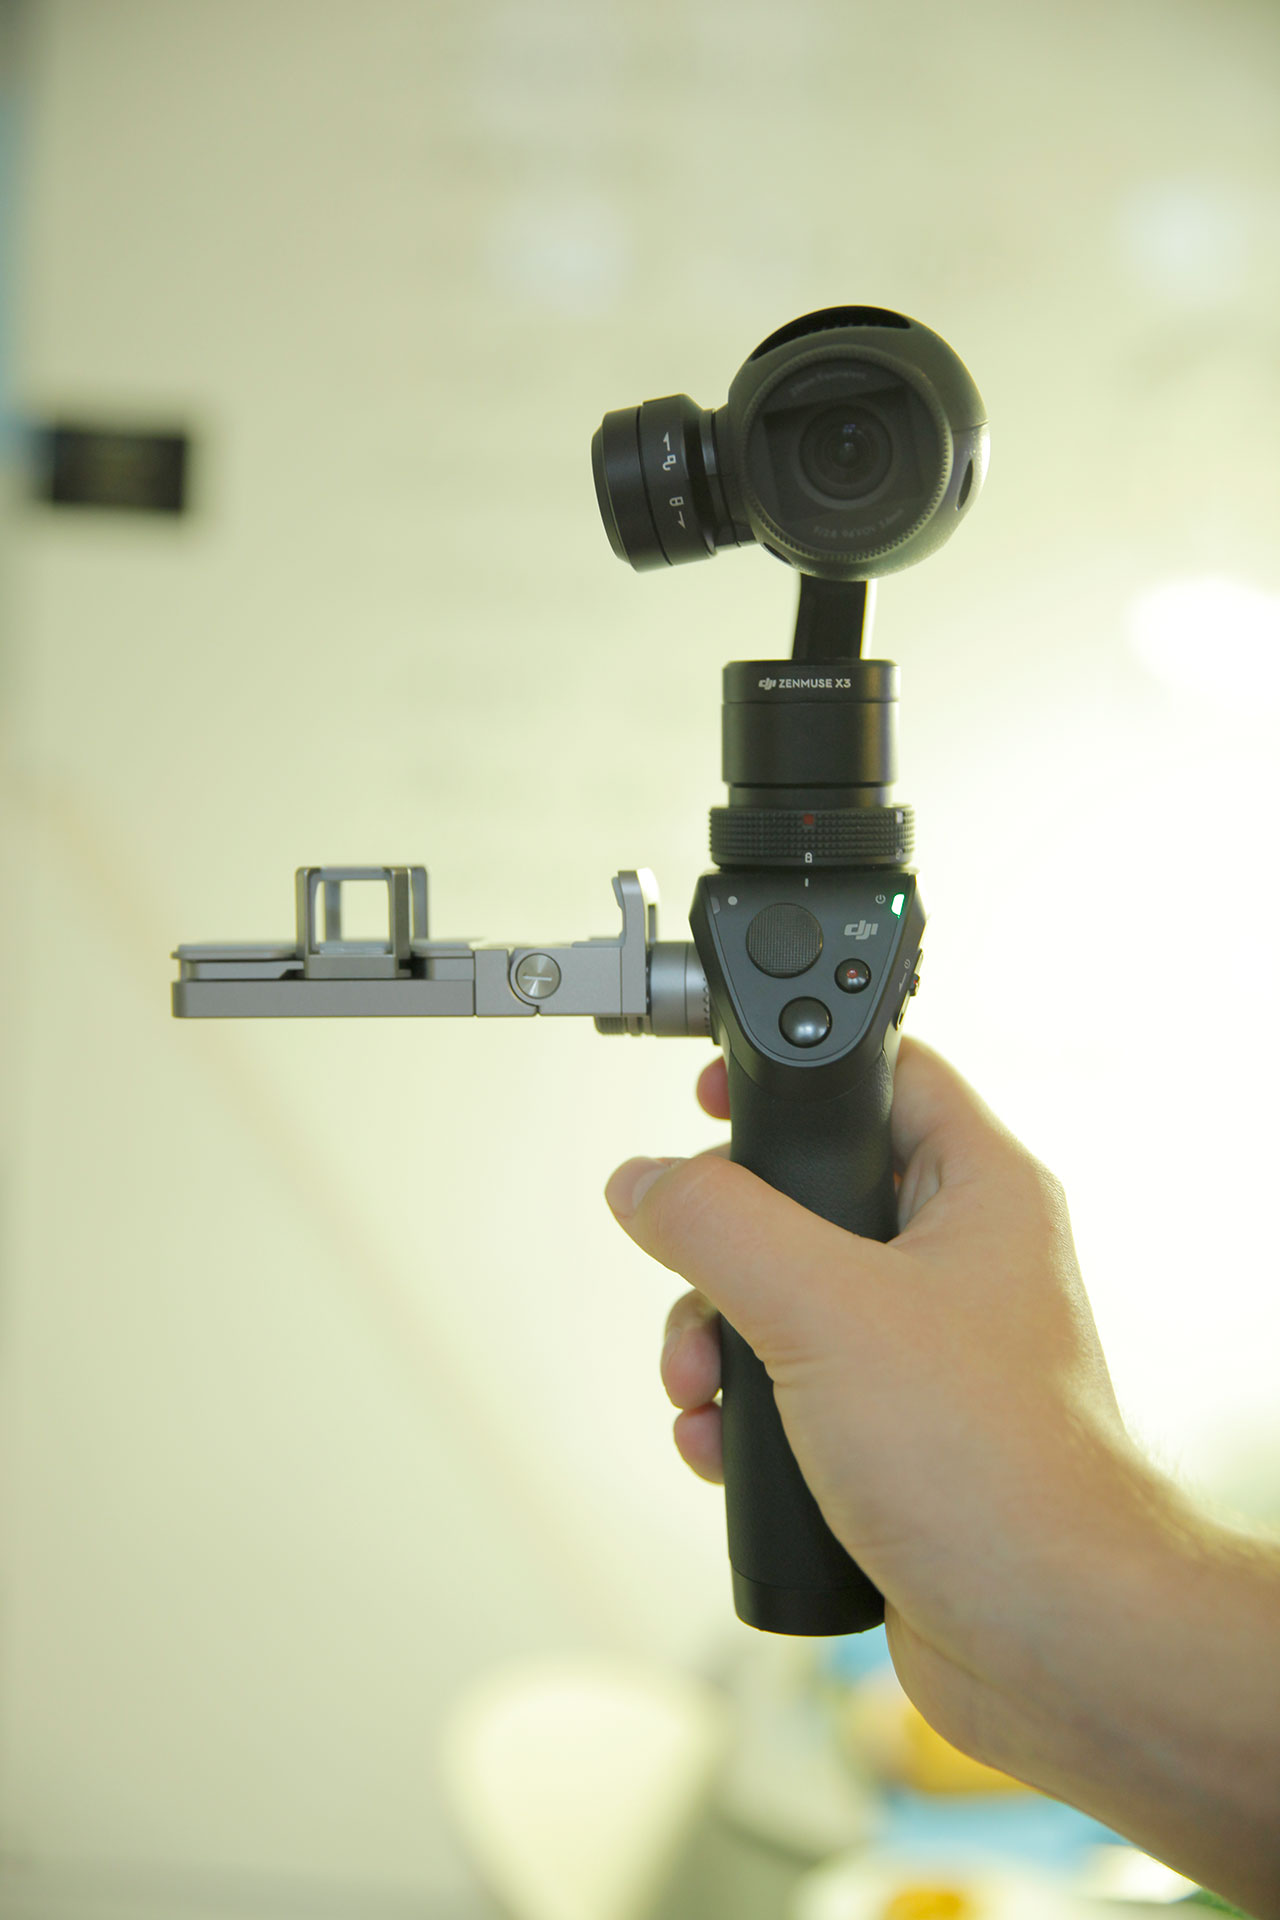 DJI_osmo_hands_on_1